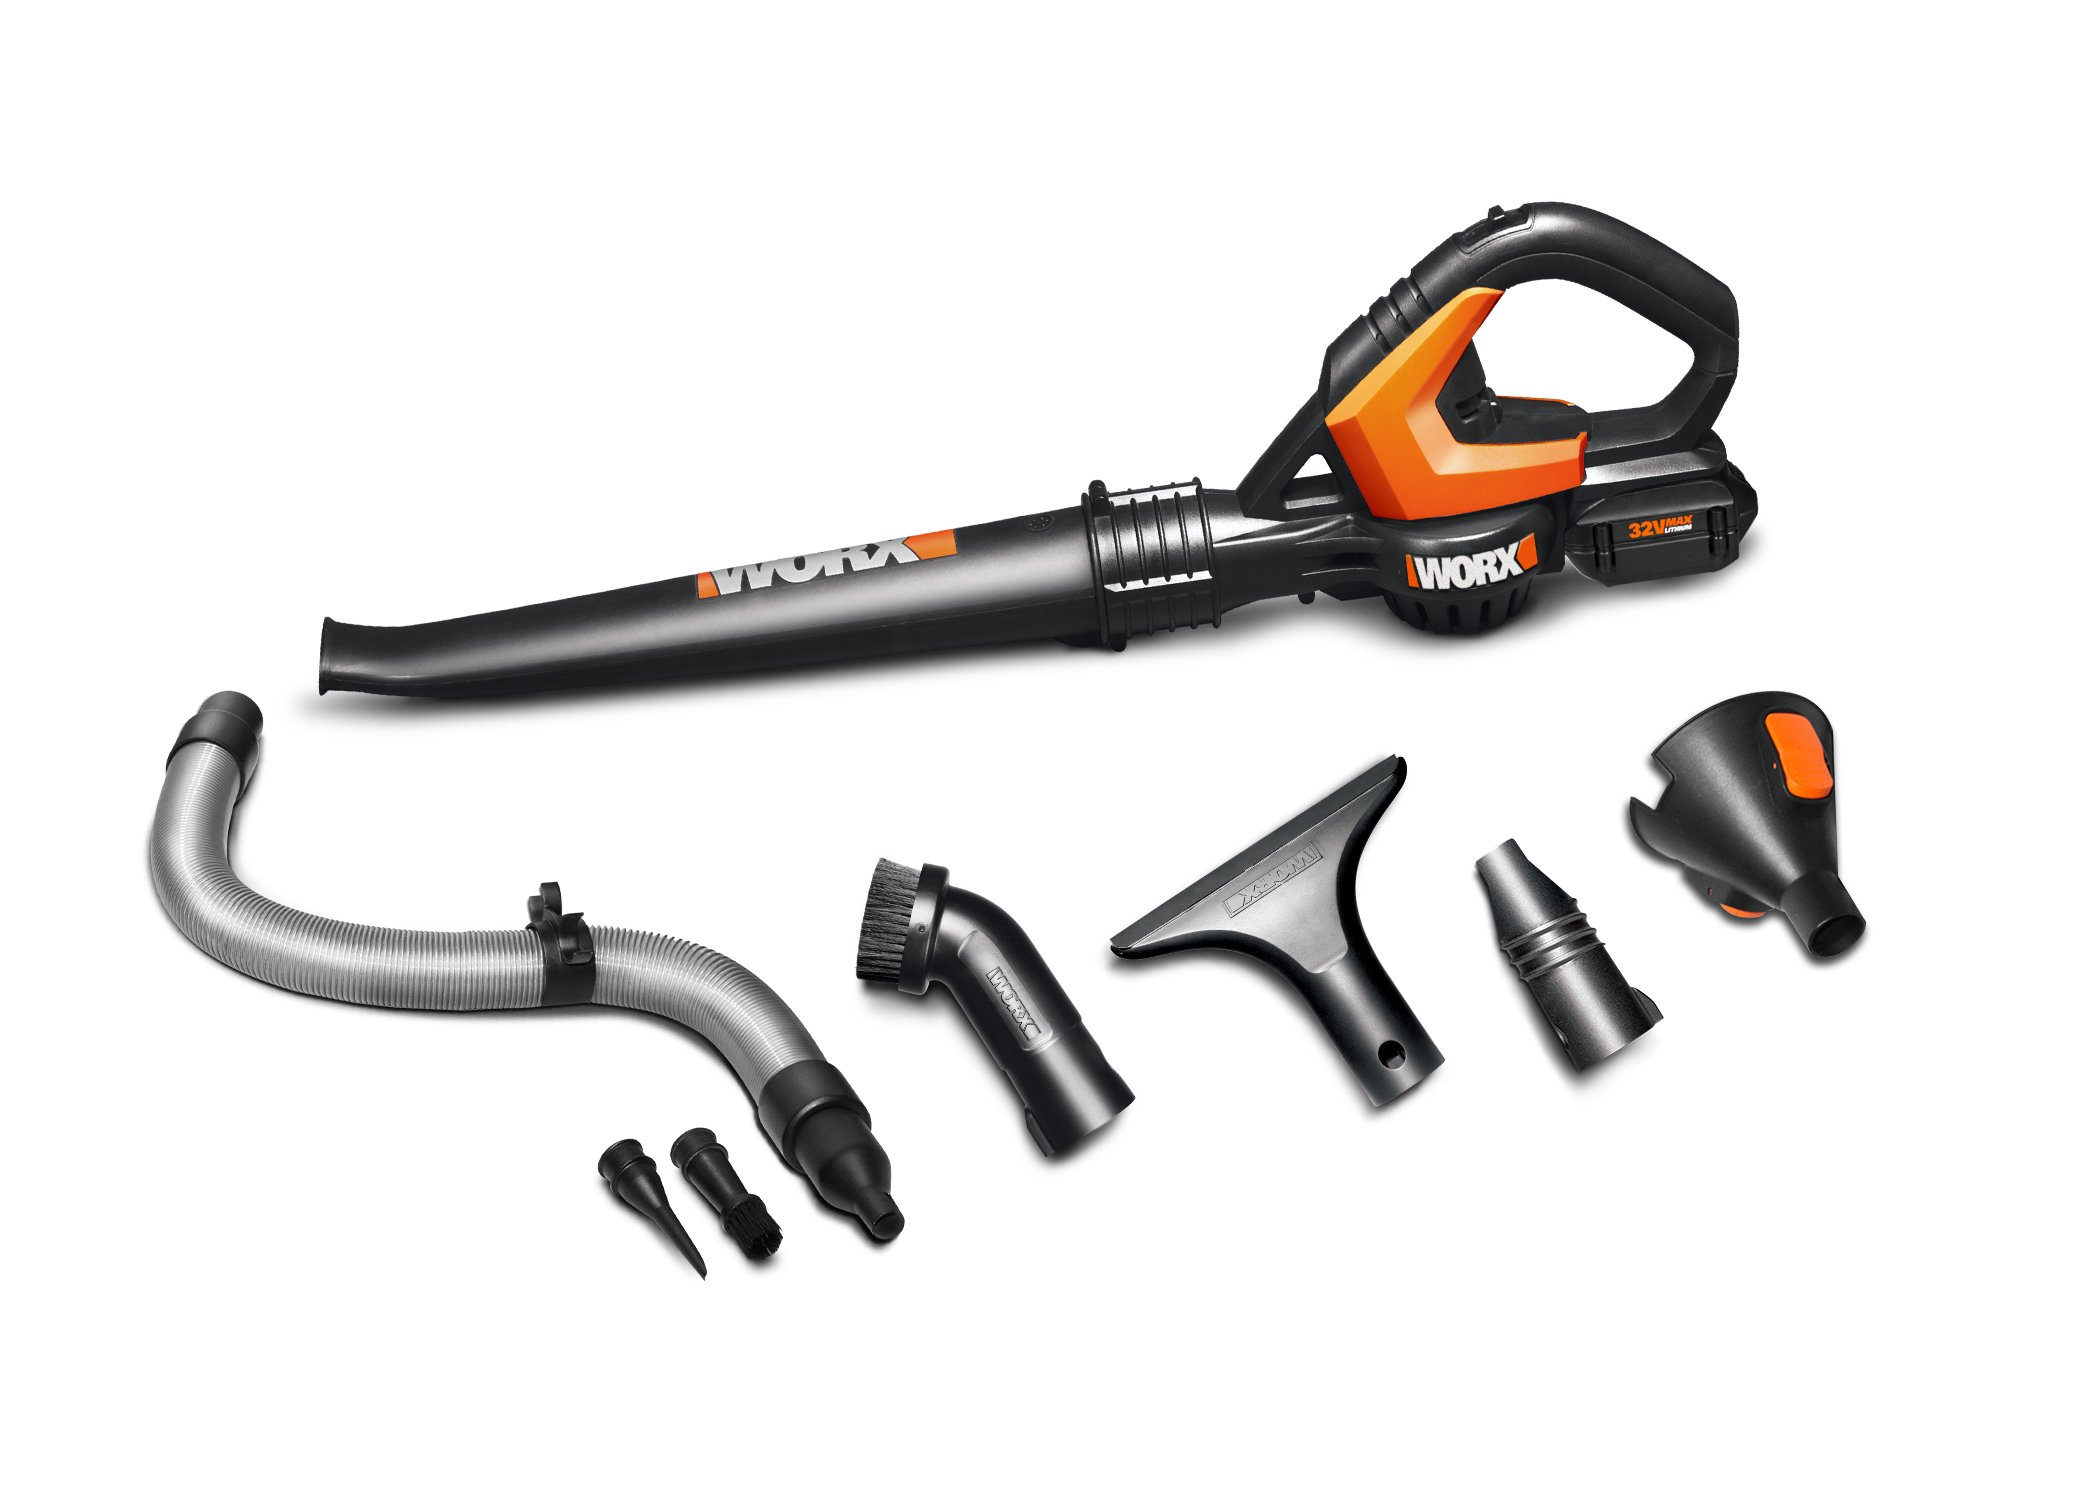 WORX 32V 2.0AH Battery + Charger Included AIR Multi-Purpose Blower/Sweeper/Cleaner with 120 MPH / 80 CFM Output, 4 lb. Weight, with 8 Attachments – WG575.1 by Worx